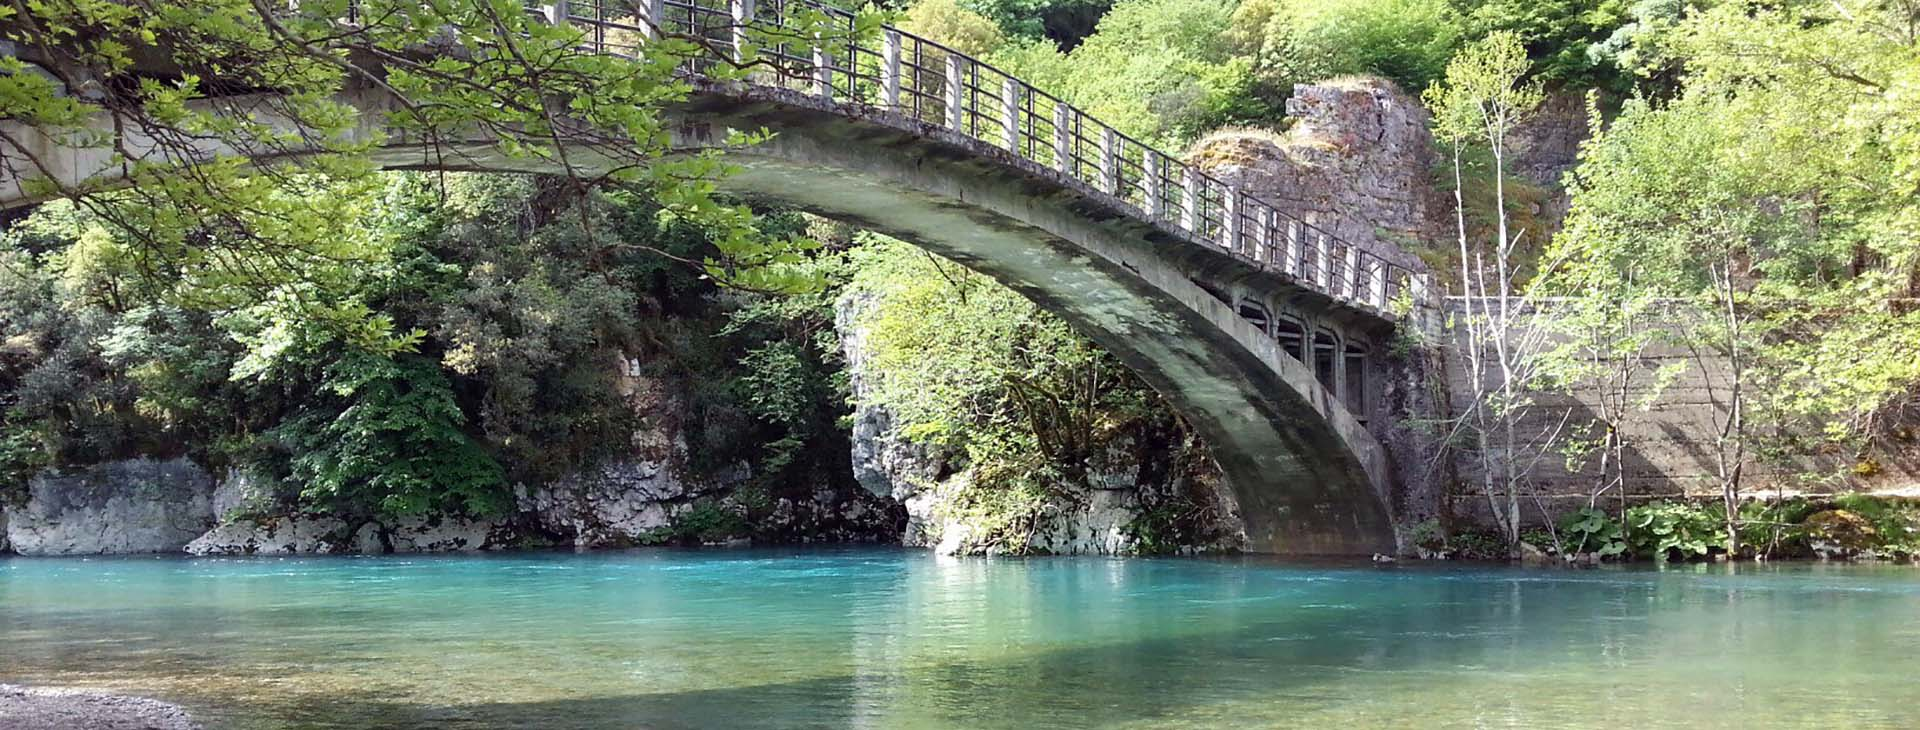 Aristi bridge, Voidomatis river, Ioannina